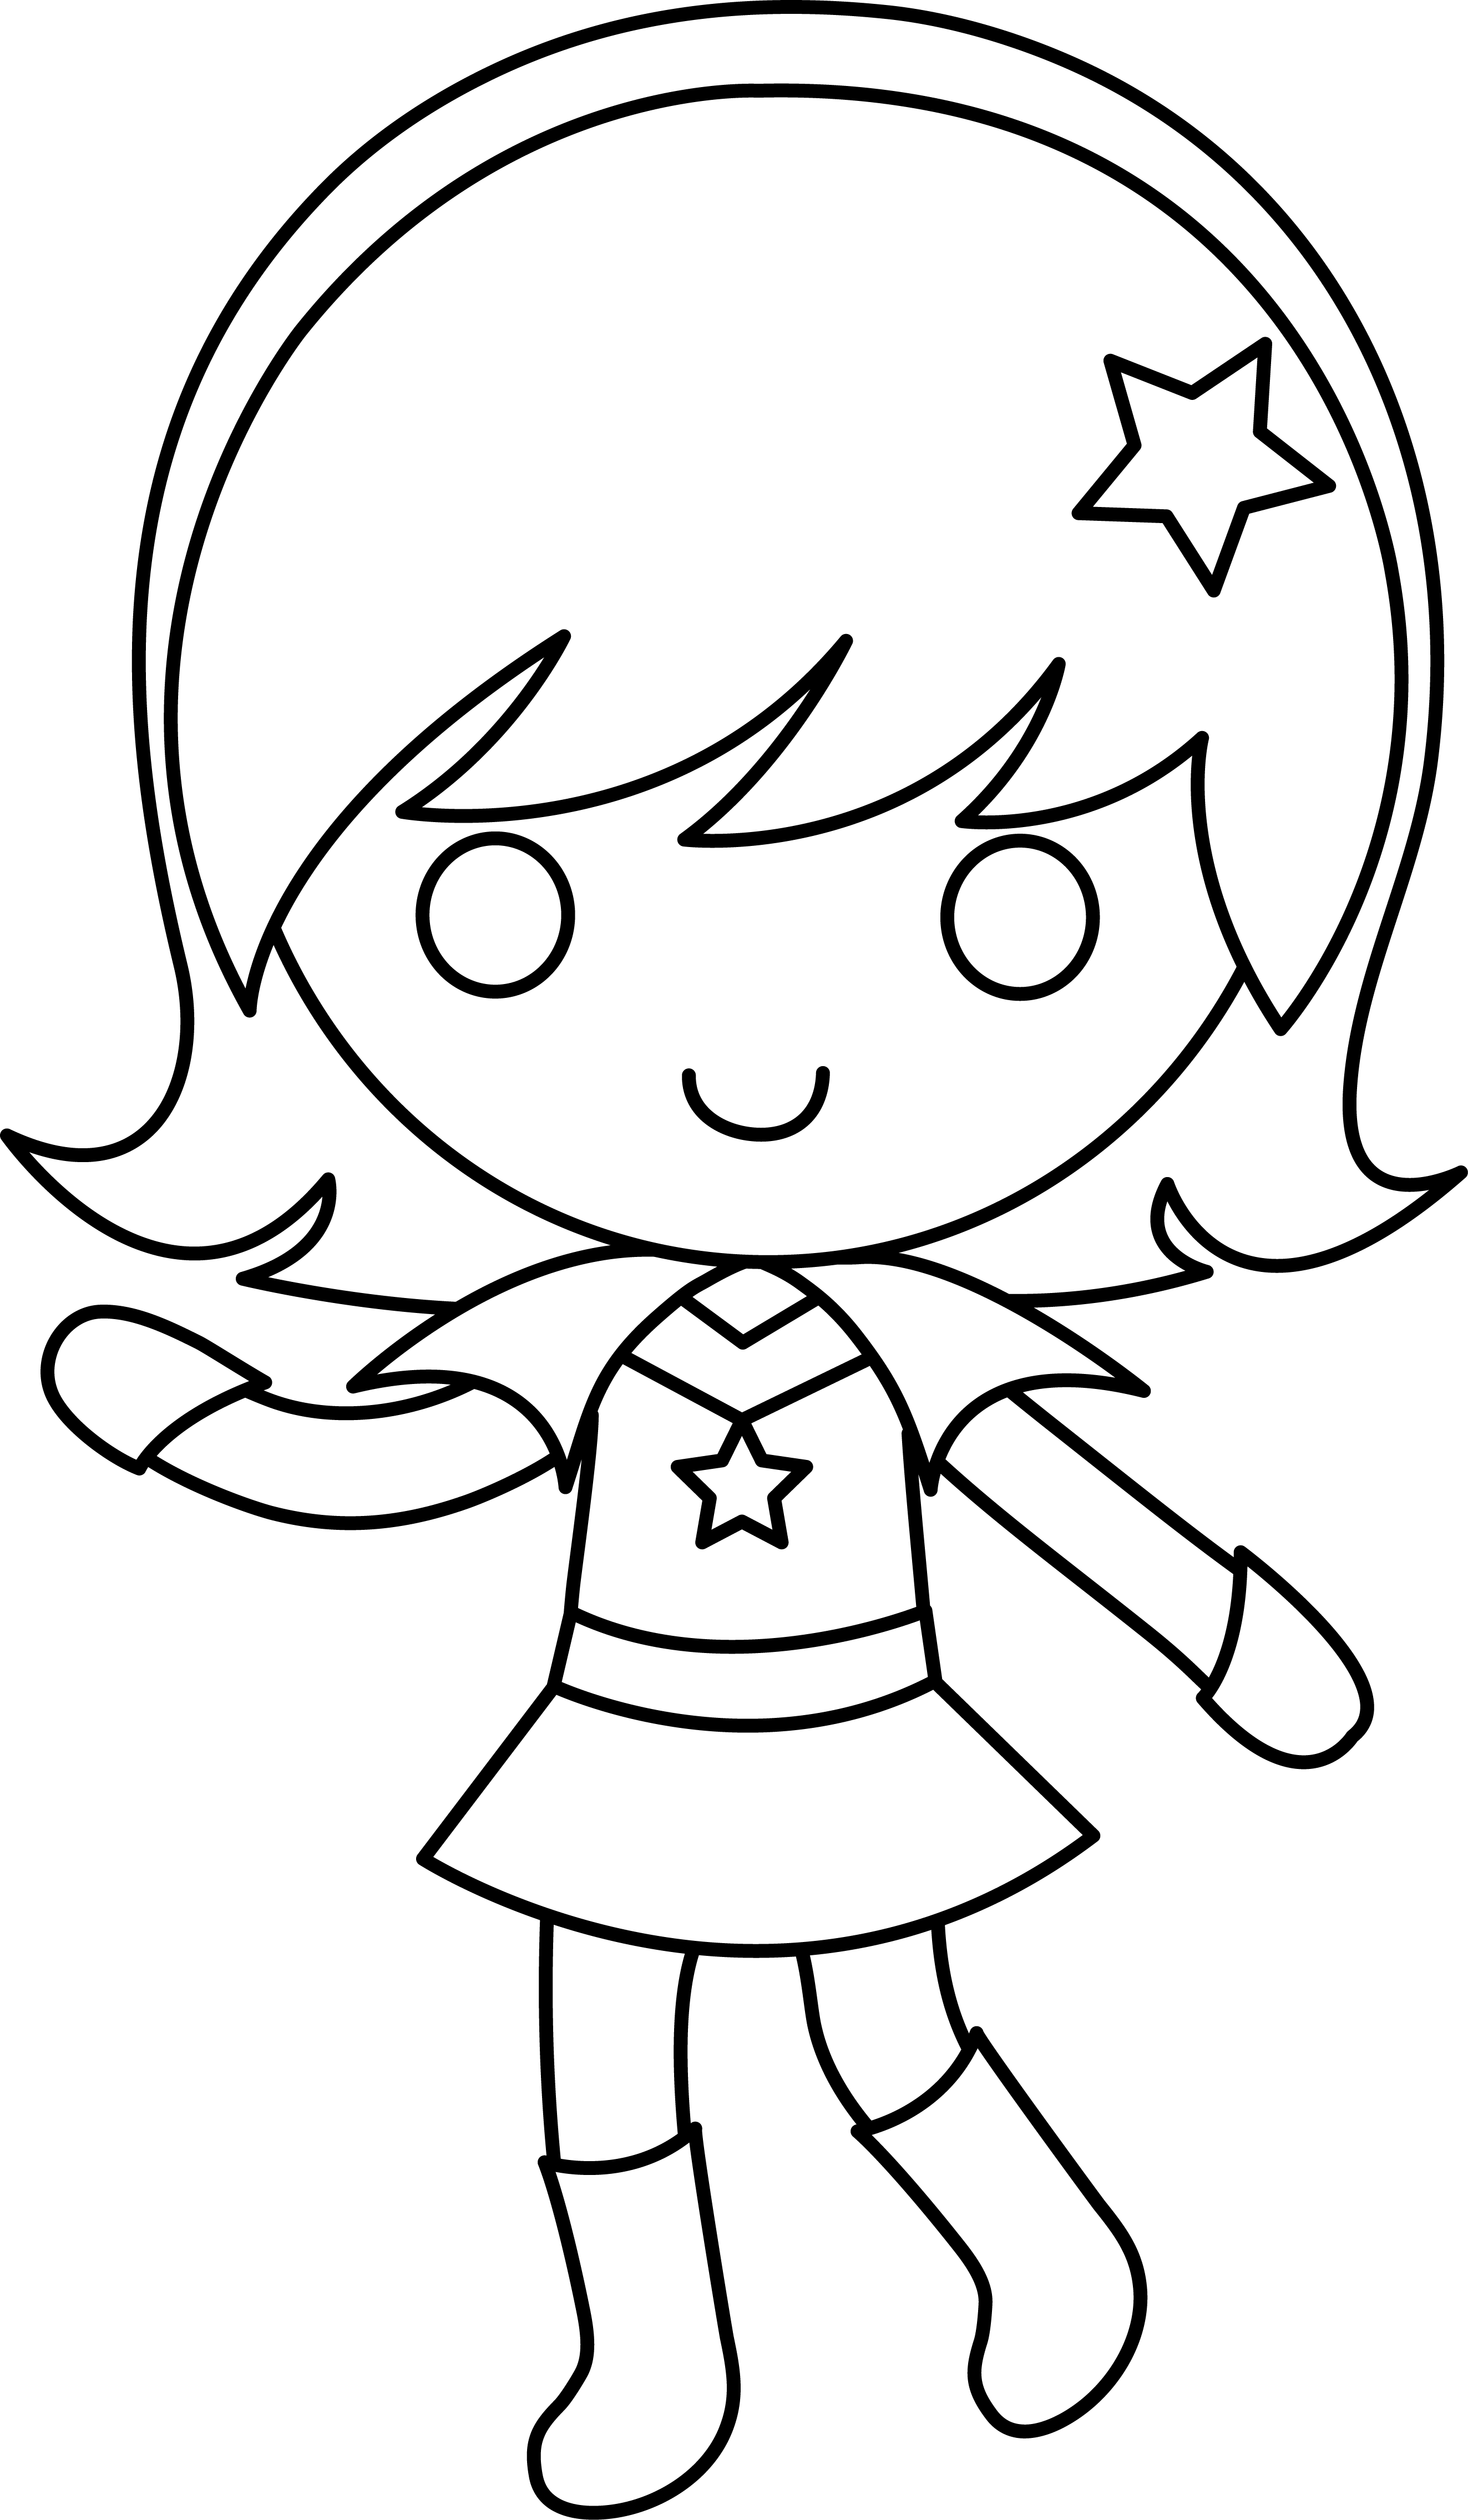 Flower girl clipart black and white picture freeuse download Black And White Drawing Of Girl at GetDrawings.com | Free for ... picture freeuse download